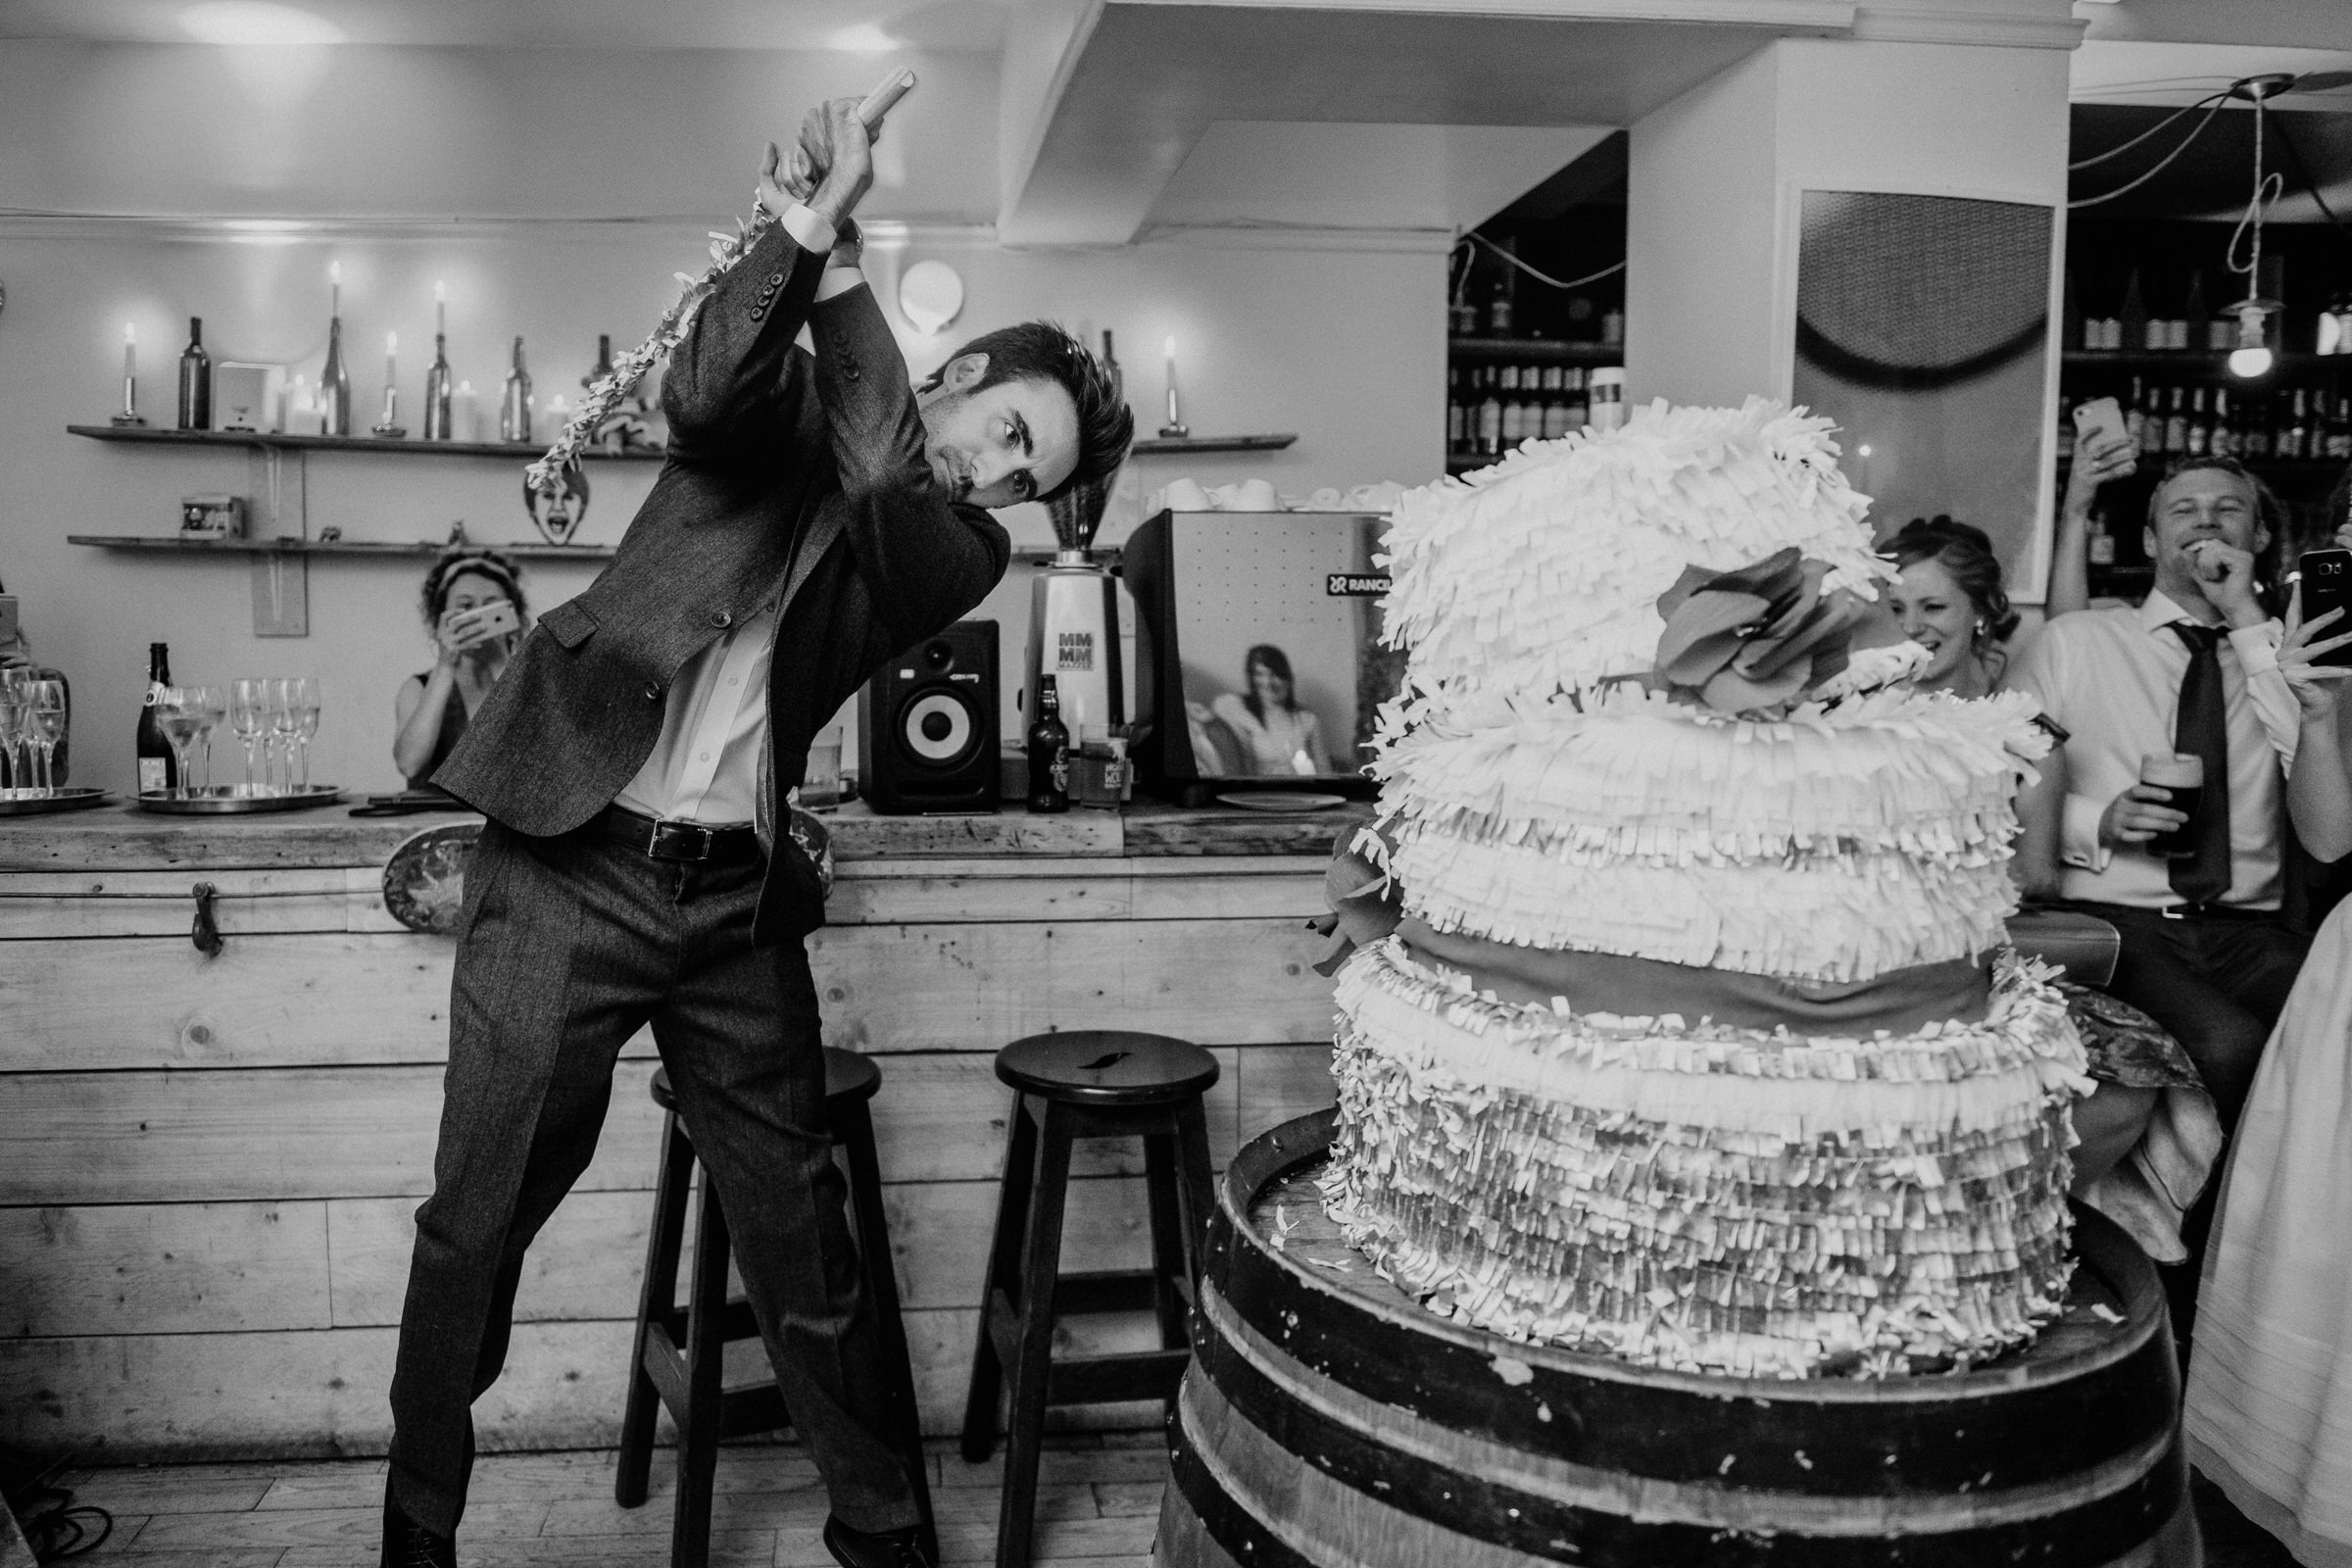 Groom attacks piñata wedding cake with a wooden sword - photo by John Gillooley - Ireland